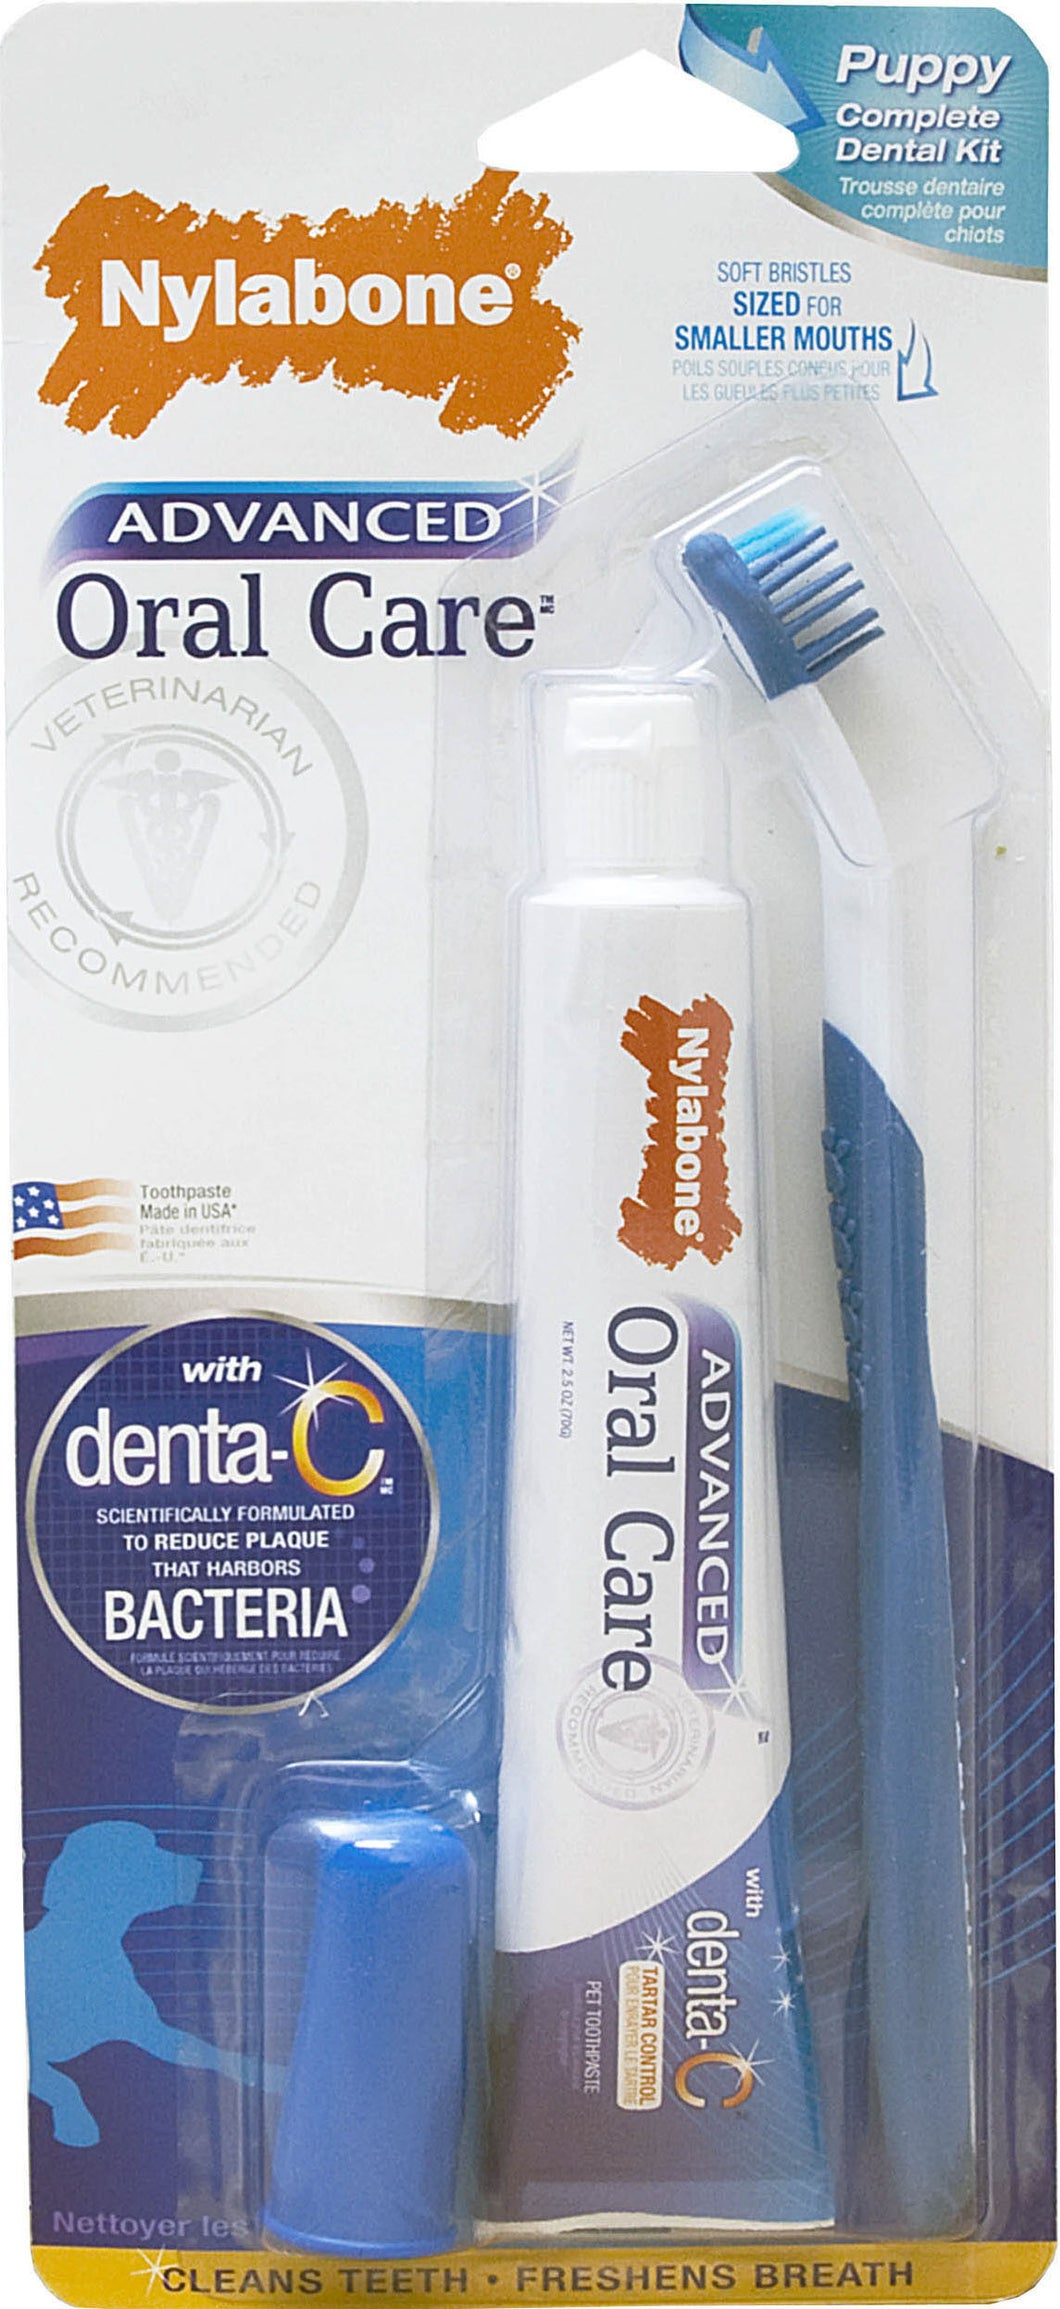 Advanced Oral Care Puppy Dental Kit